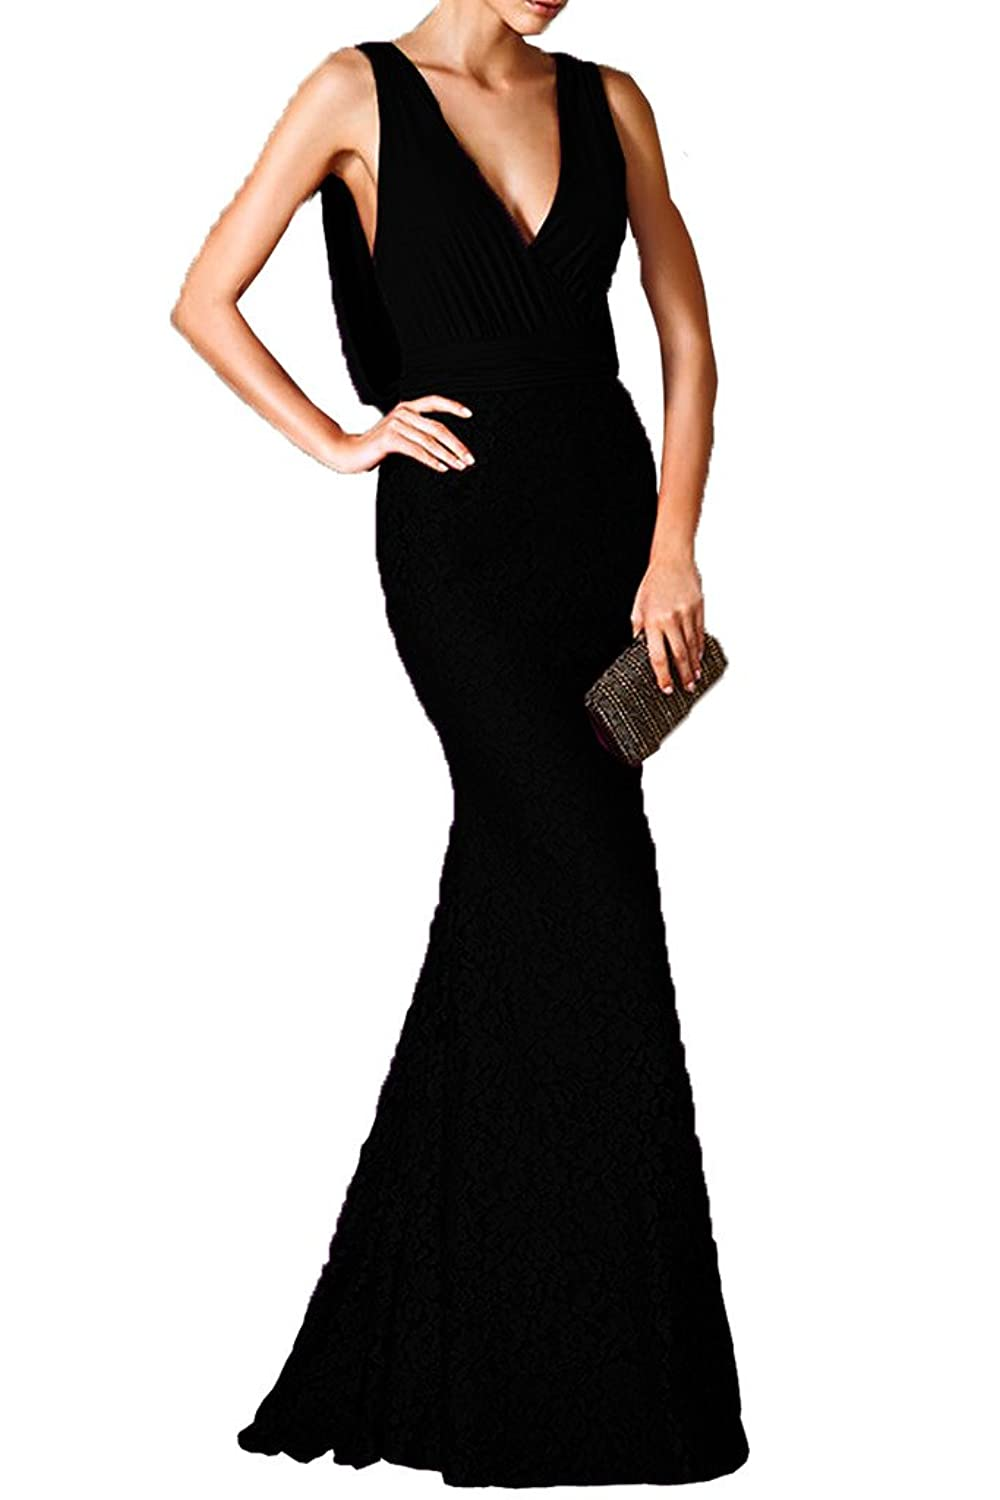 Charm Bridal Women Prom Dresses Deep V-neck Lace Evening Party Dresses Backless